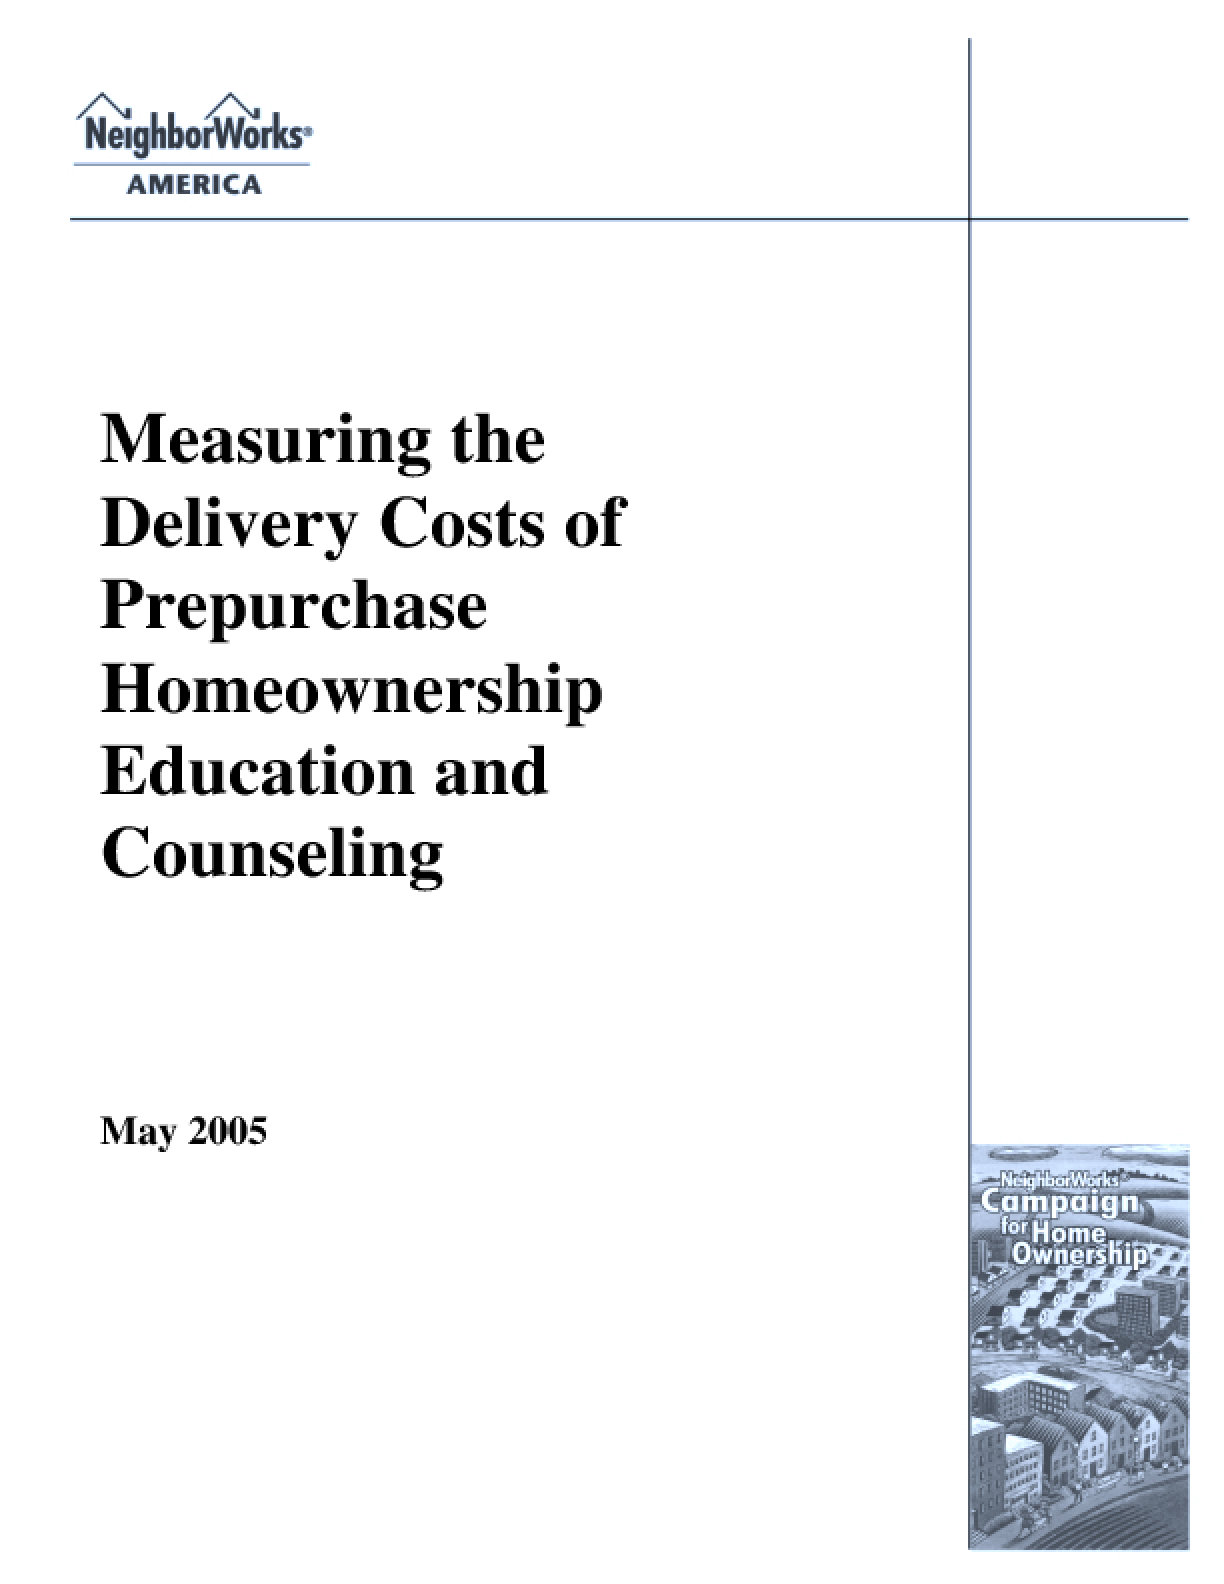 Measuring the Delivery Costs of Prepurchase Homeownership Education and Counseling